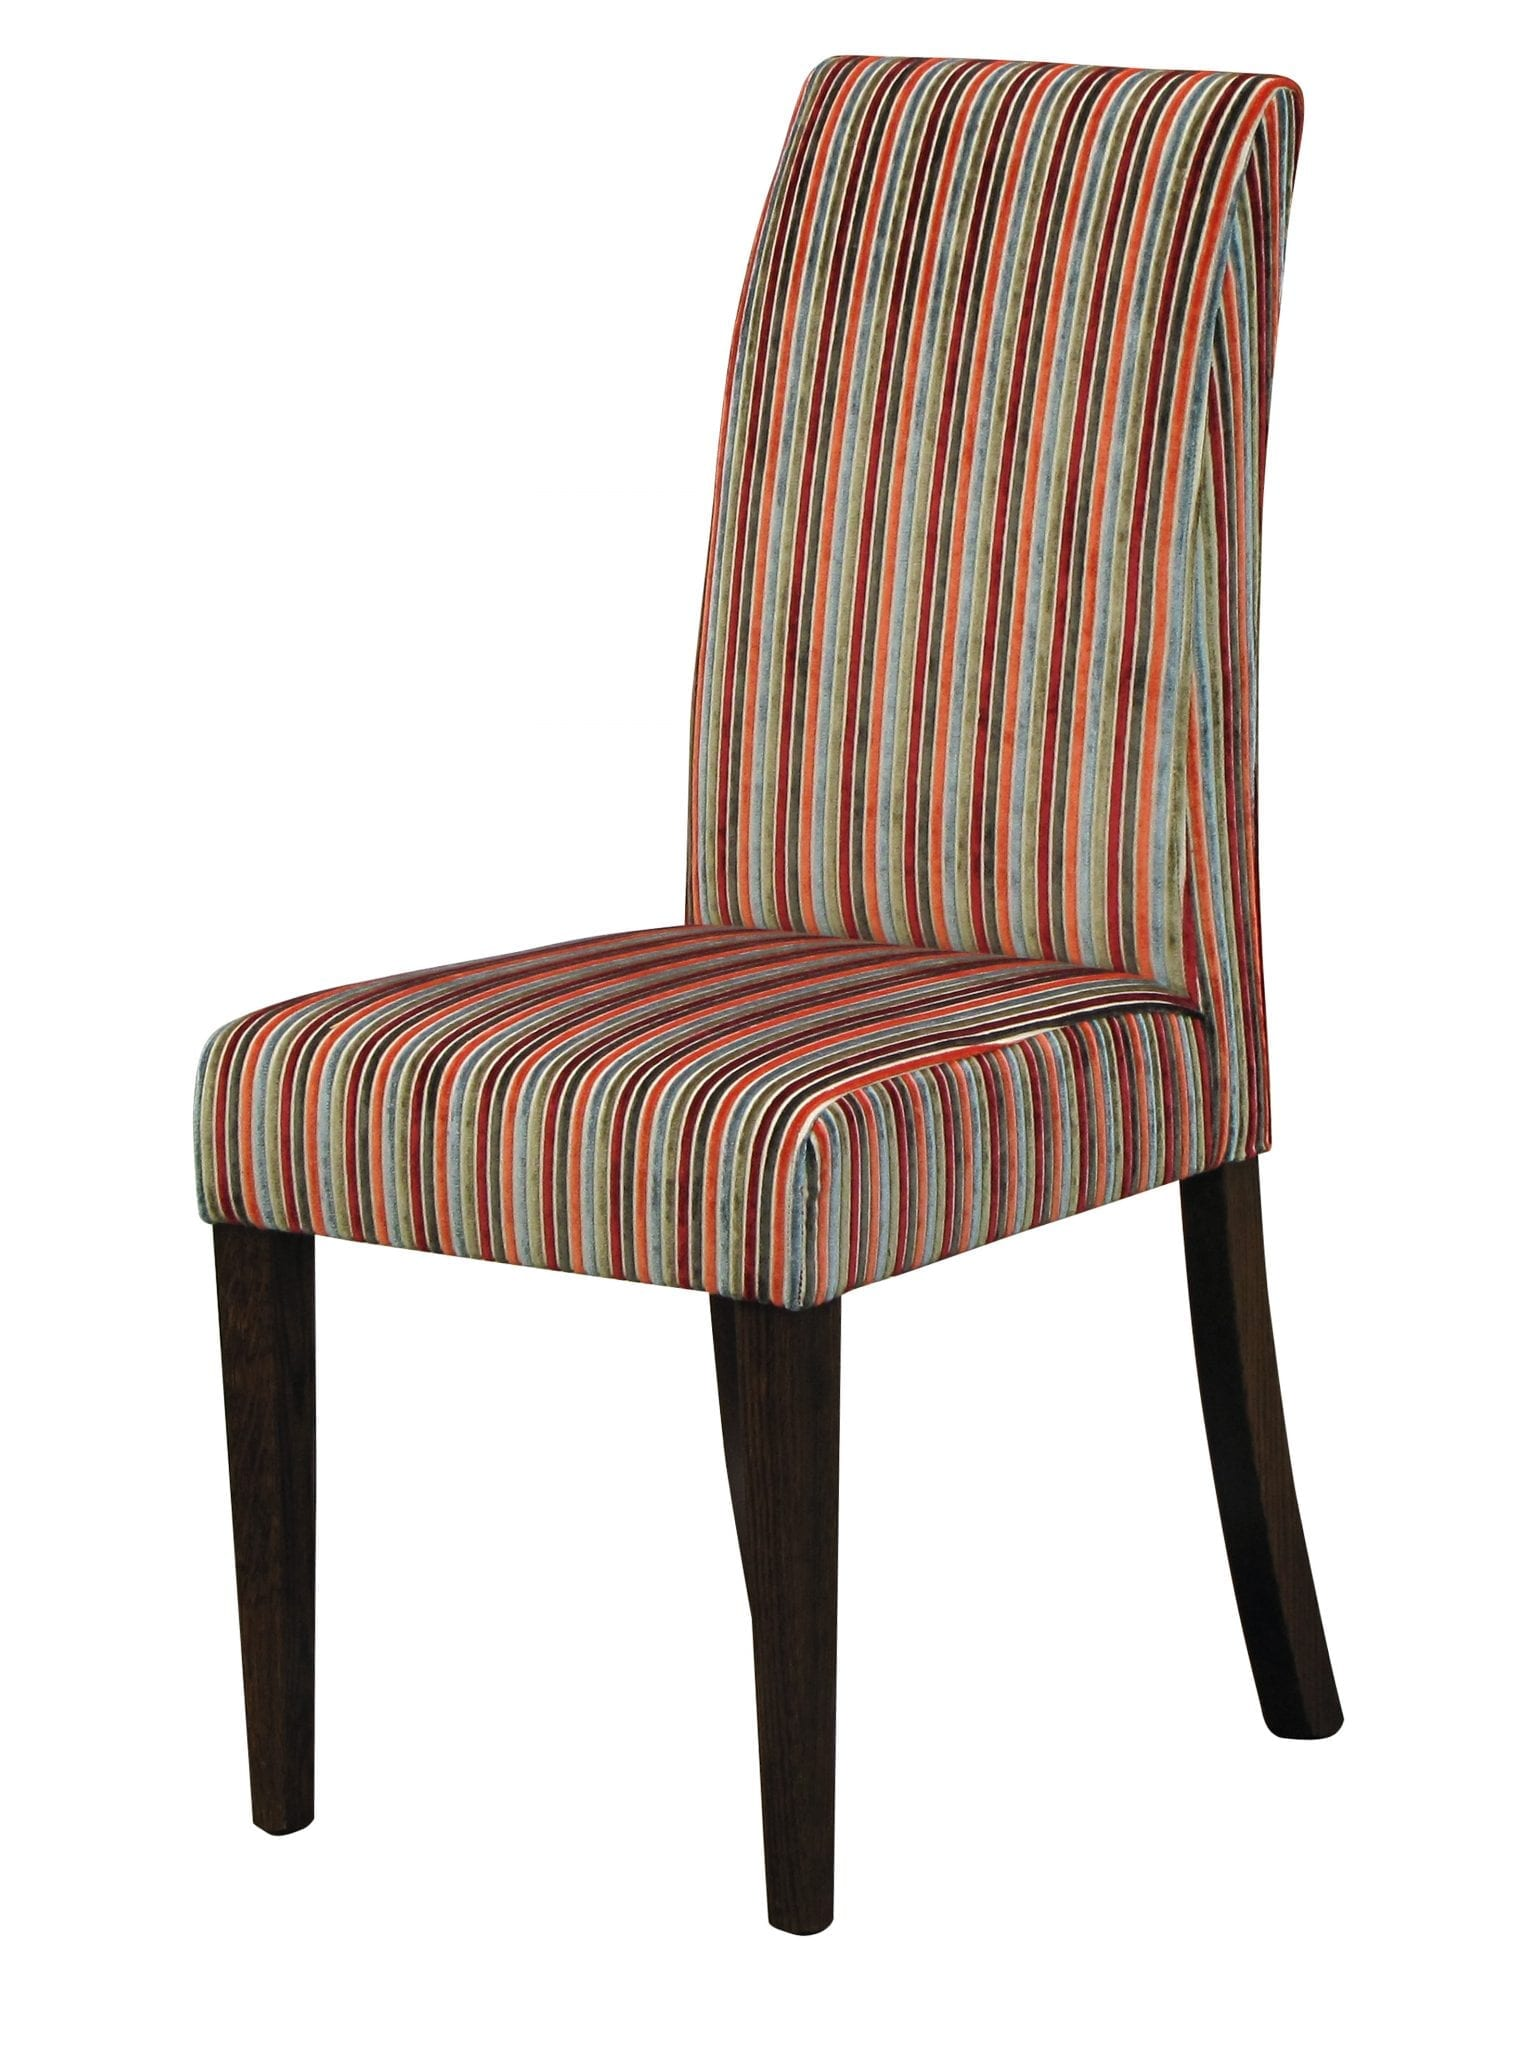 Hilton dining chair